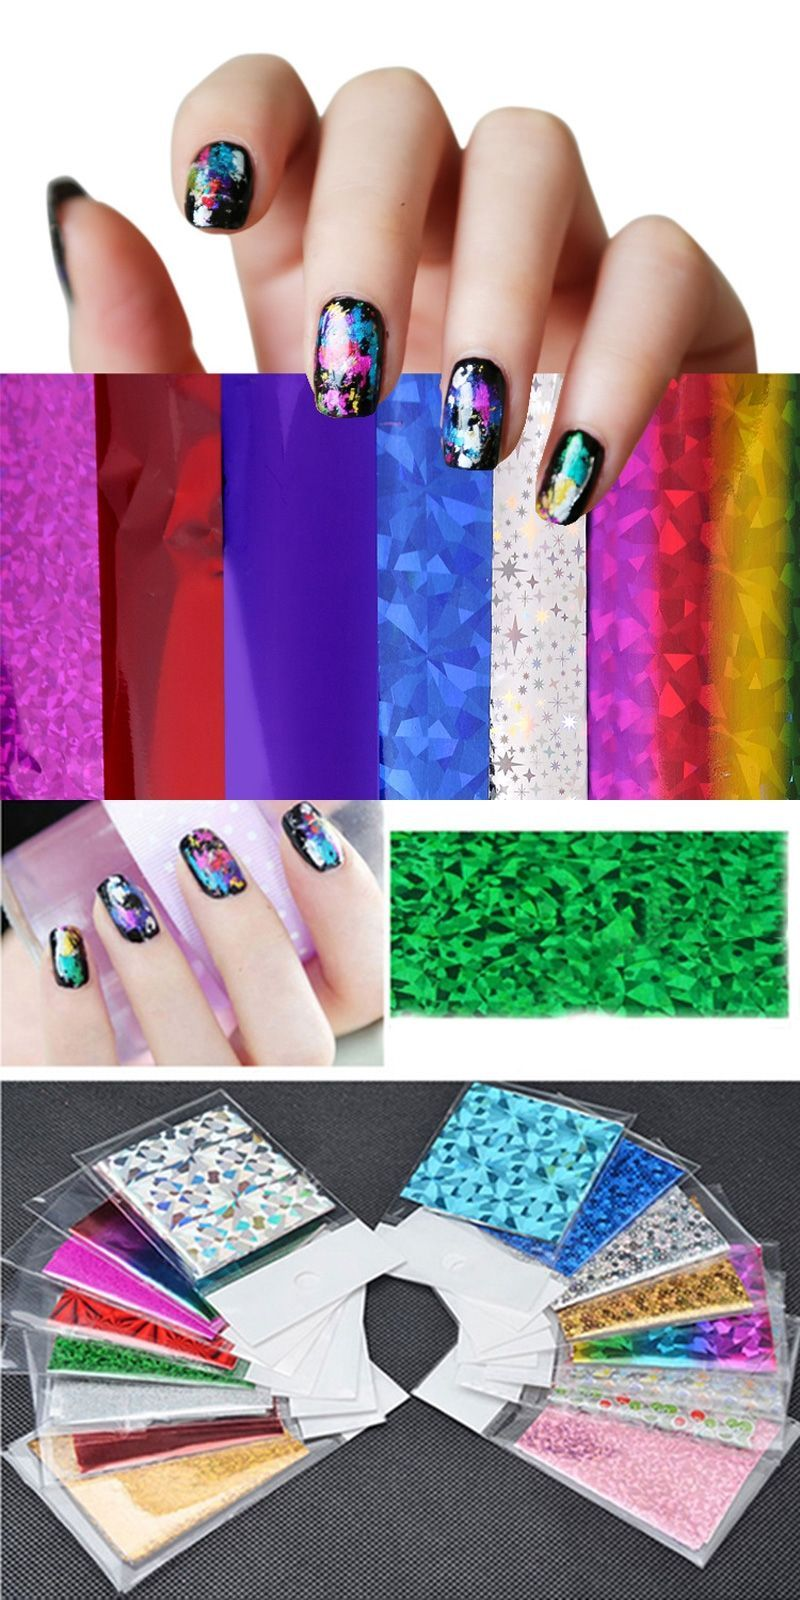 4cm 30cm Transfer Foil Nail Art Star Design Sticker Decal For Polish Care  DIY Free a0342f41ab18